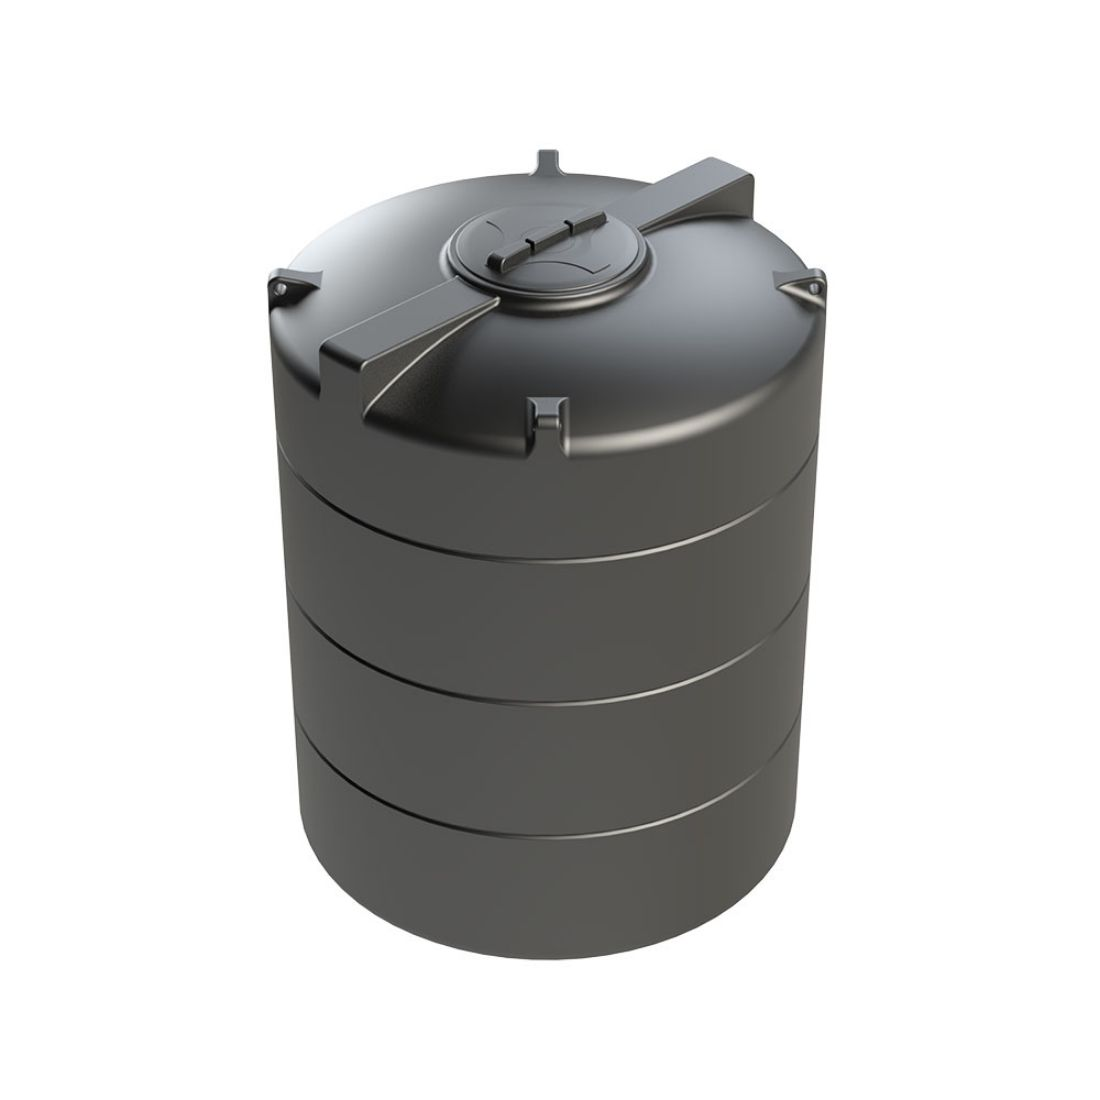 Enduramaxx 2,500 Litre Vertical Non-Potable Water Storage Tank